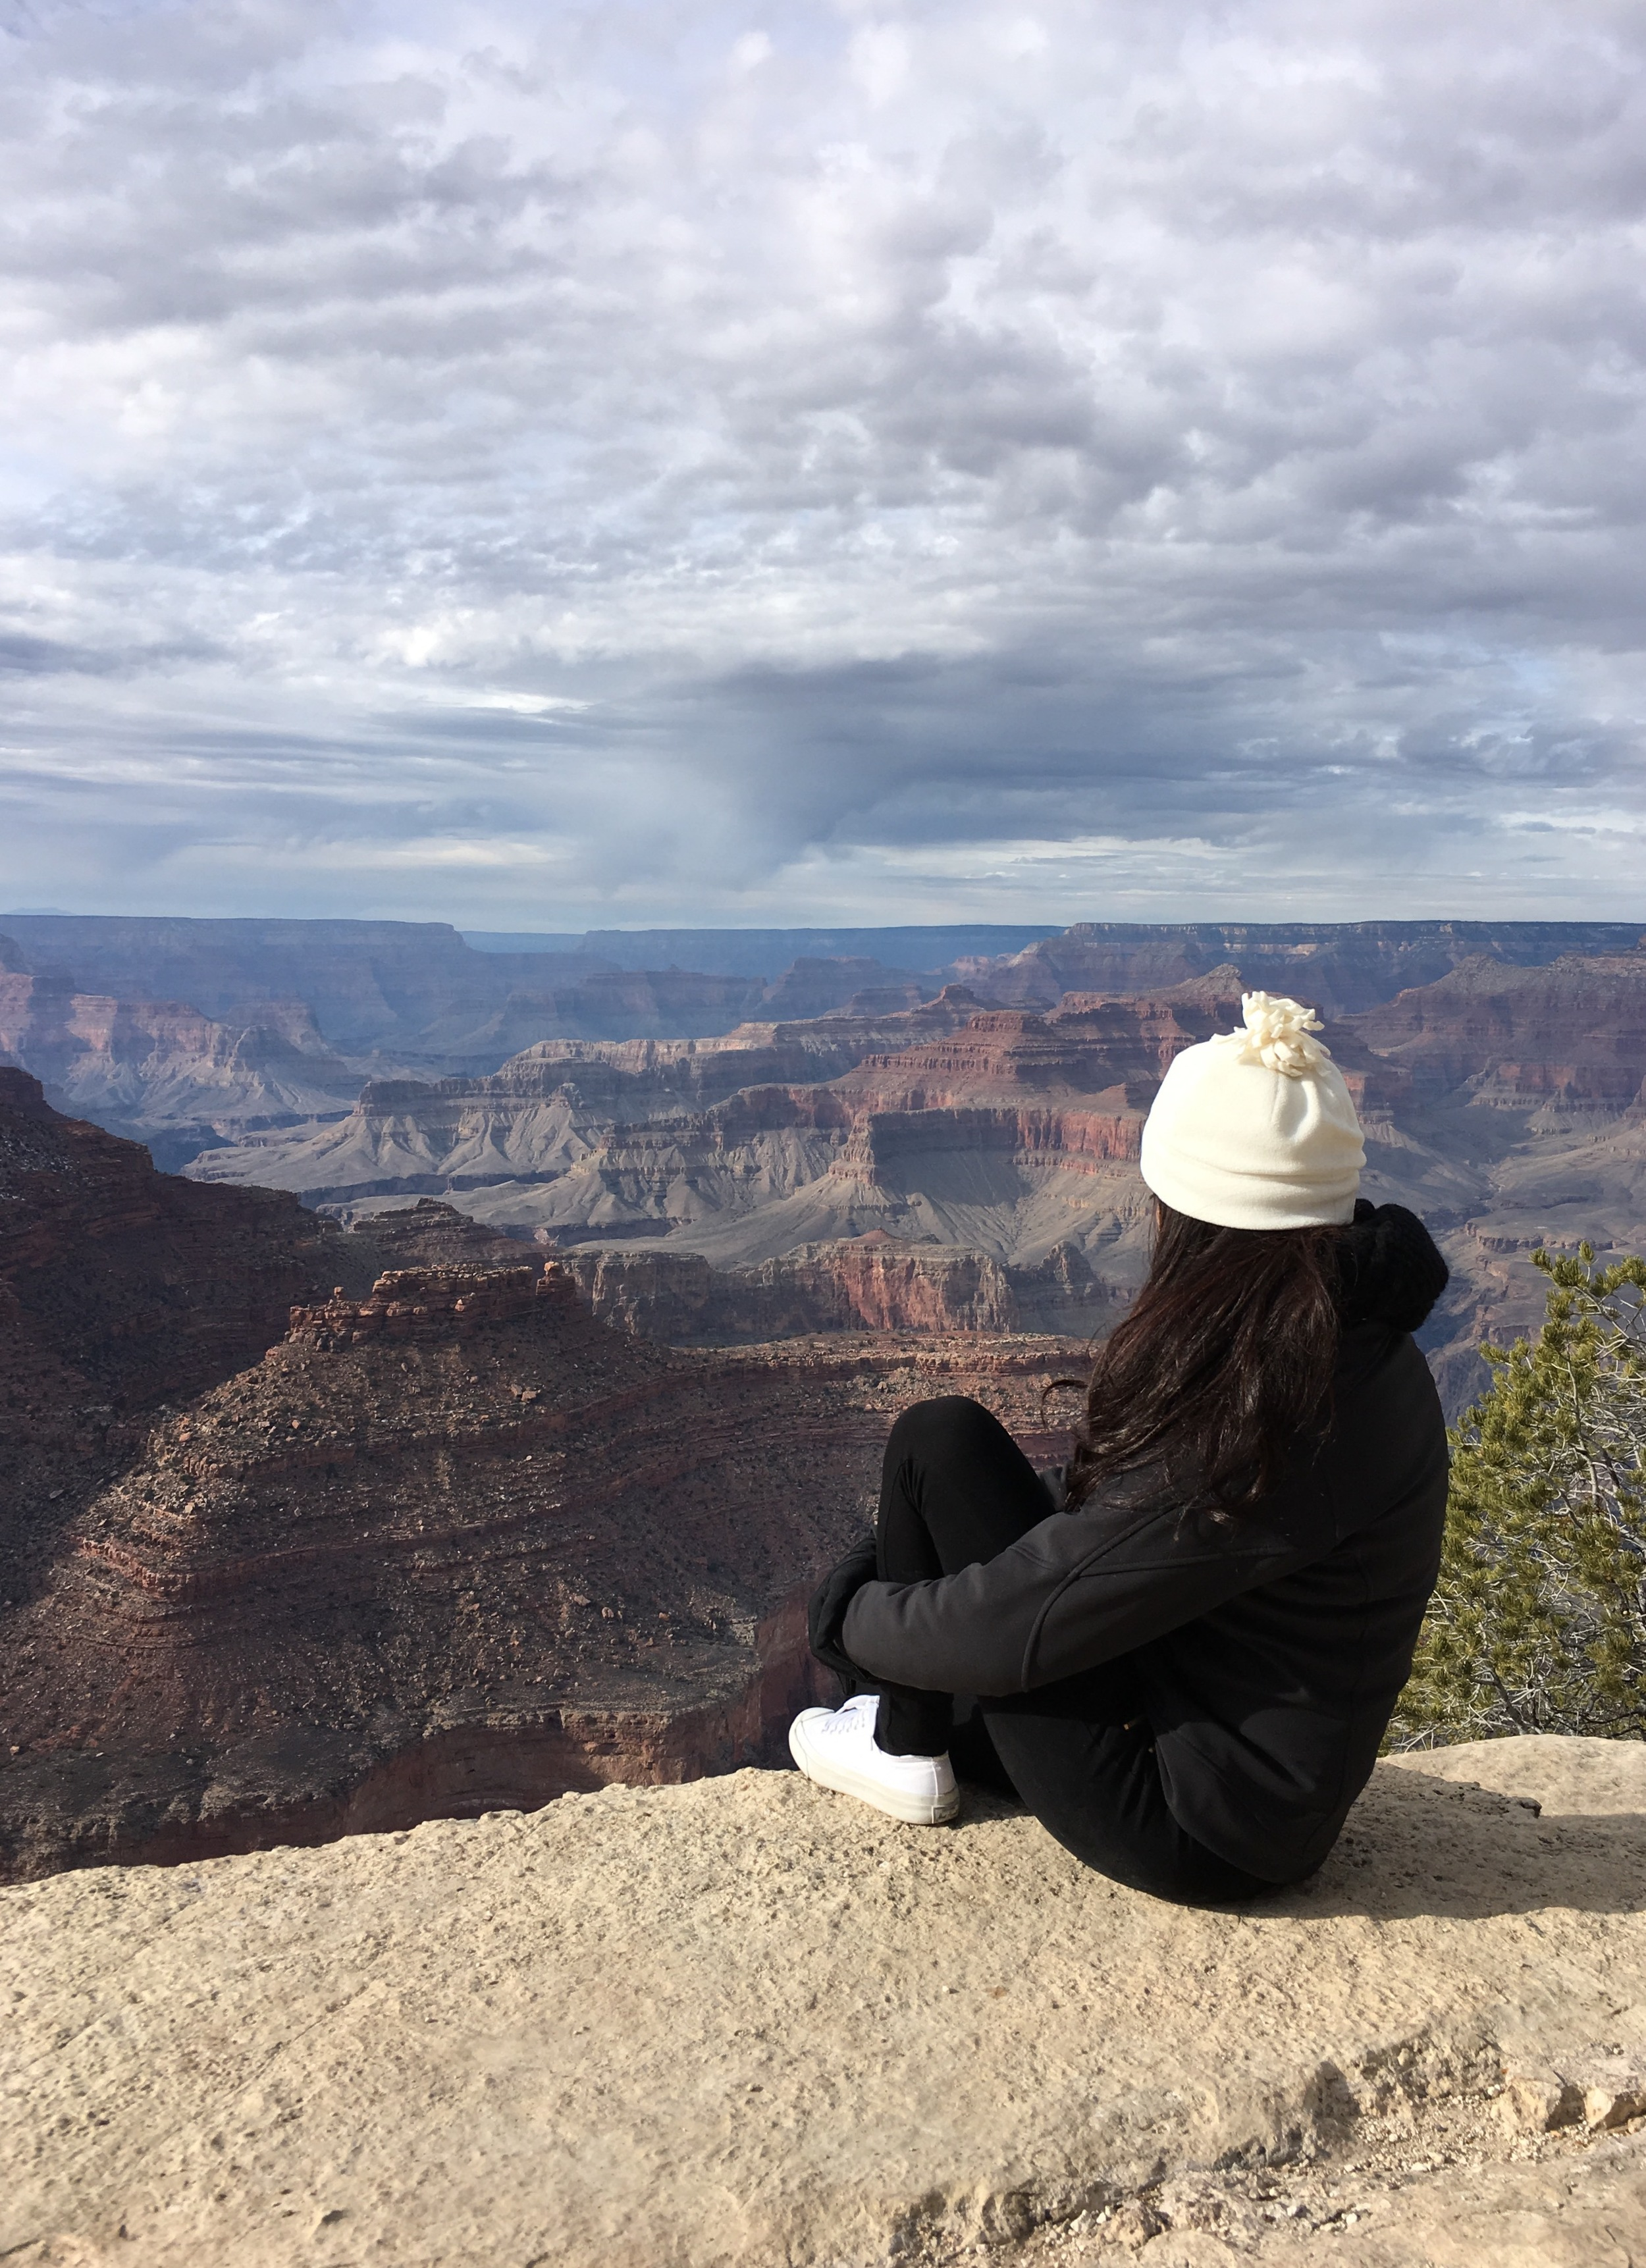 There is nothing more humbling than seeing the grandness of the Grand Canyon for yourself. It definitely makes you feel quite small. When you take the time to stop and see the beauty there is in nature it makes you appreciate how great this world can be.